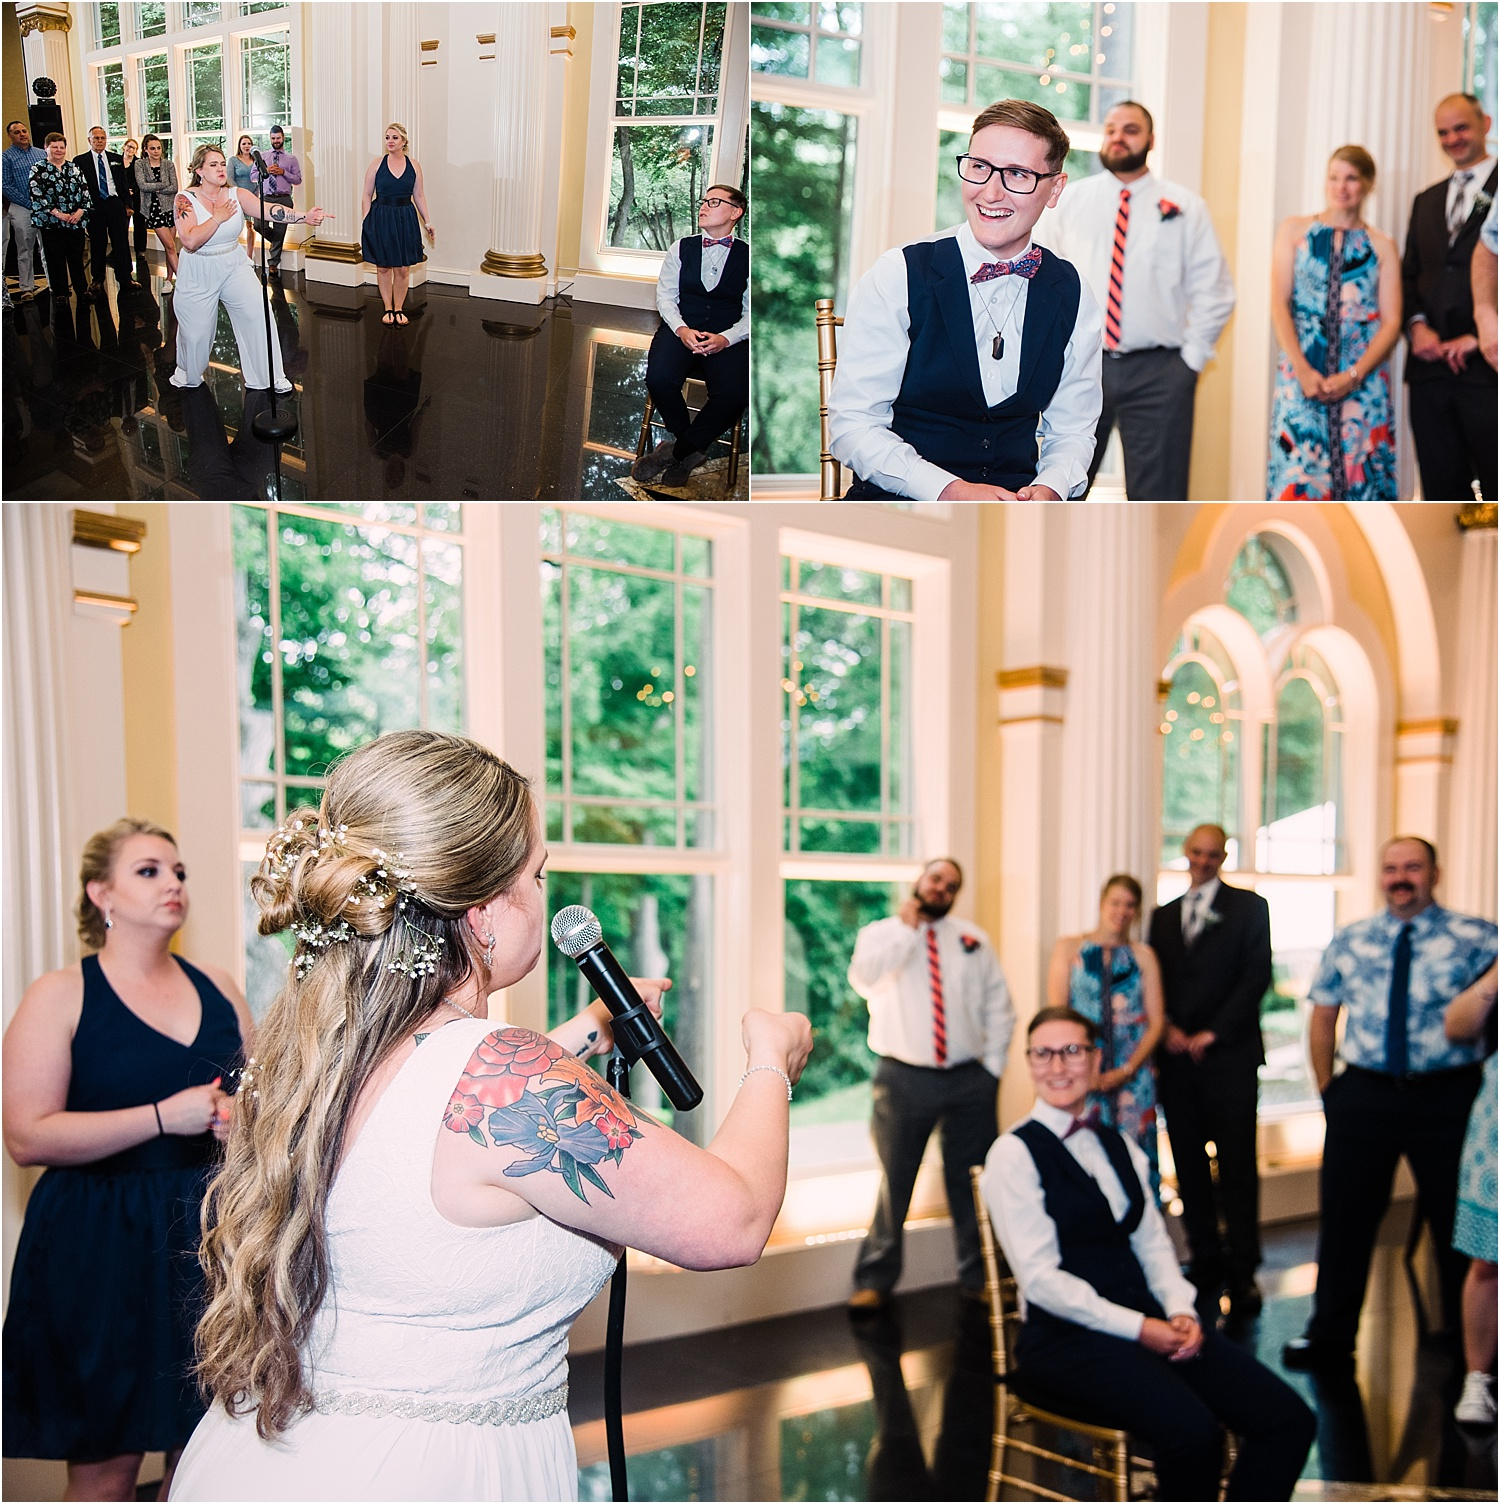 The_Riverview_Simsbury_Connecticut_Wedding_LGBT_Weddings_078.jpg